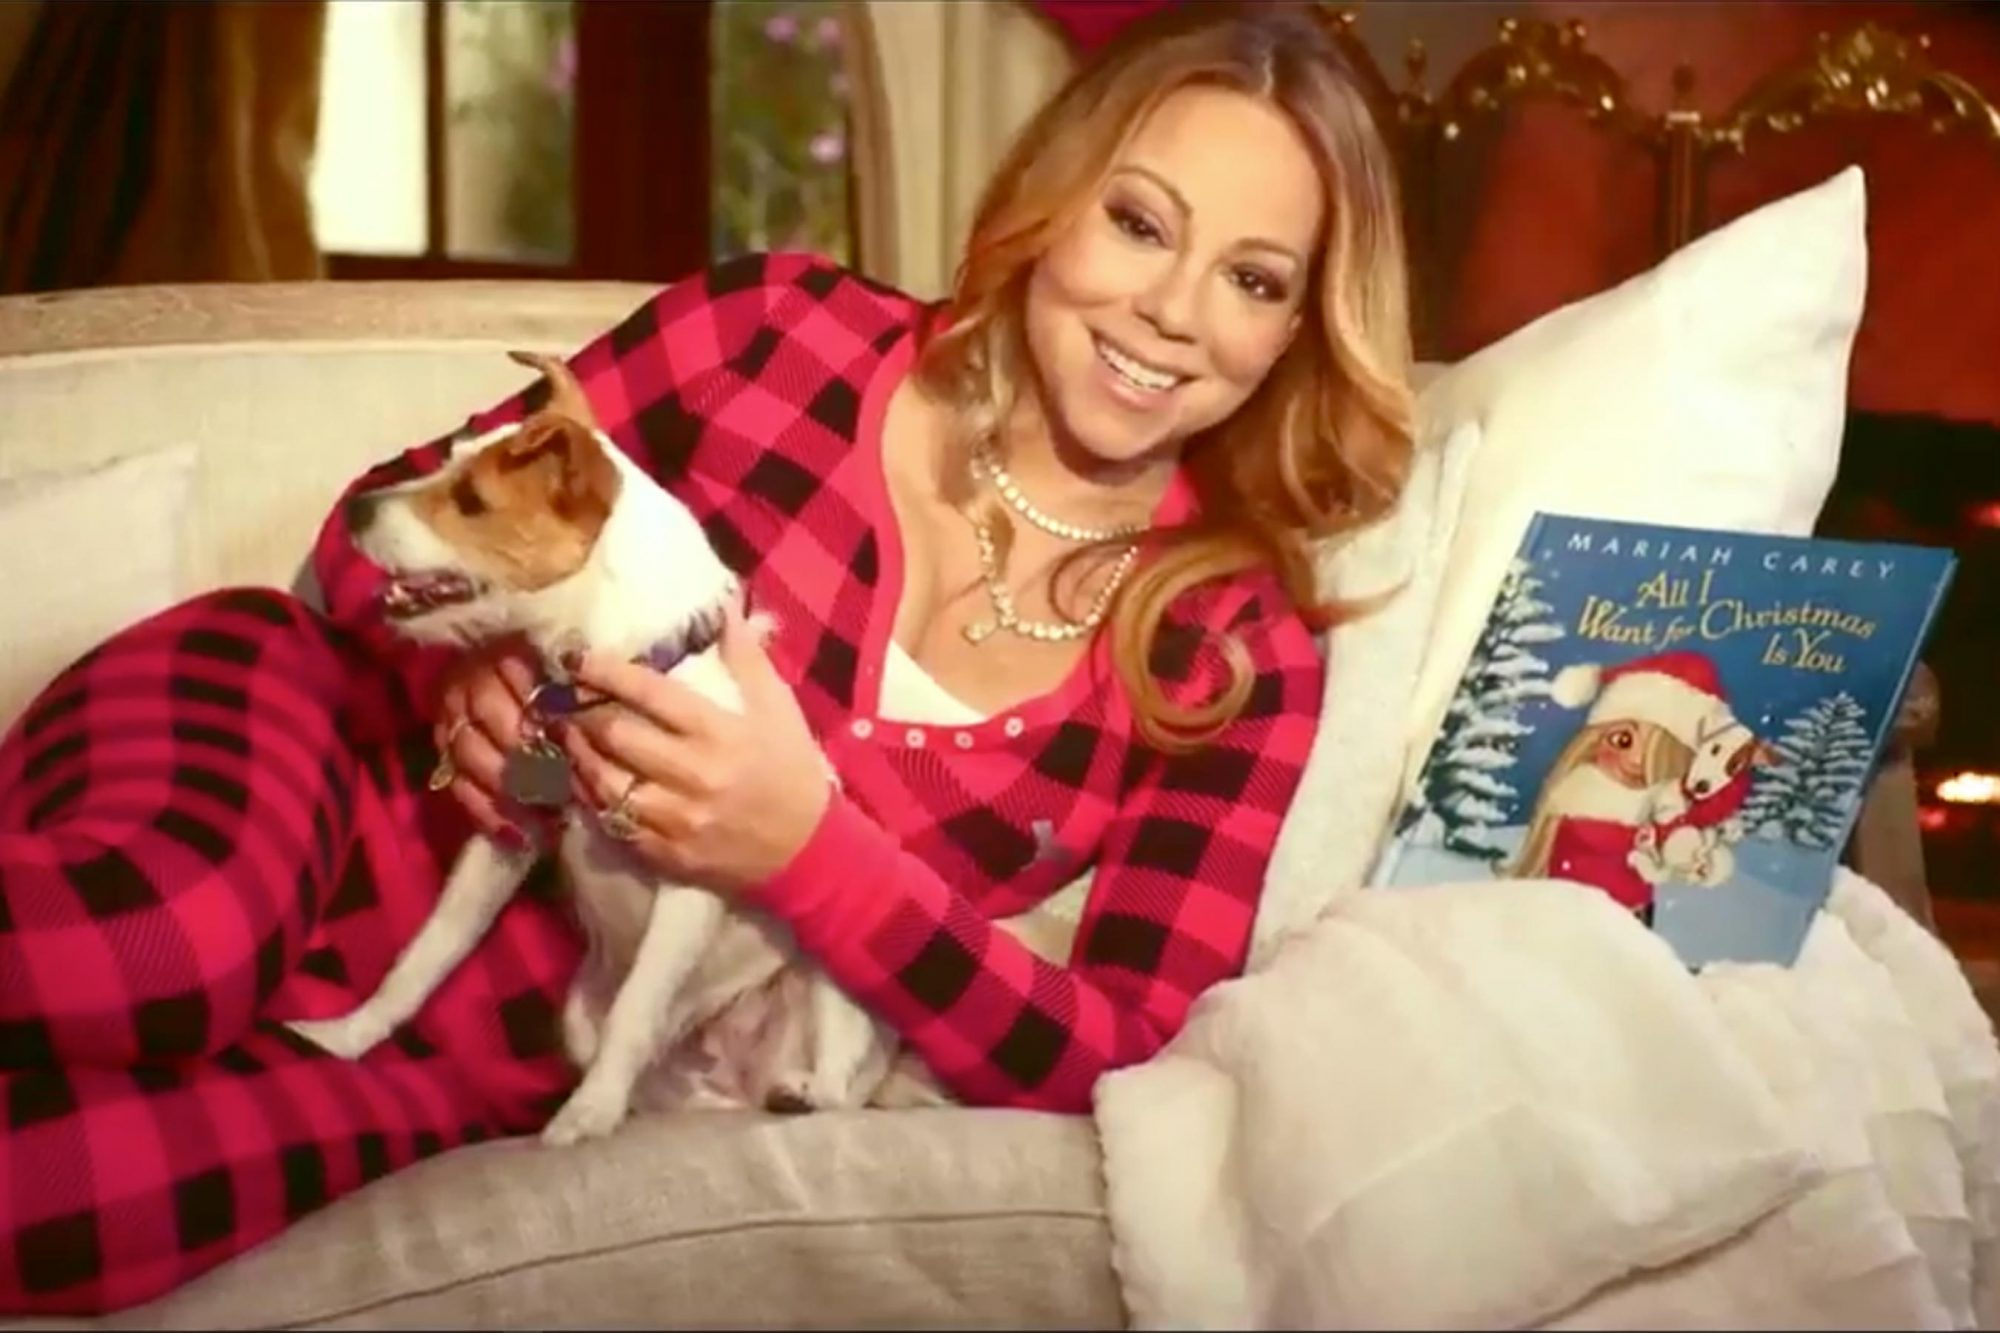 Mariah Carey's 'All I Want For Christmas Is You' is becoming an animated movie